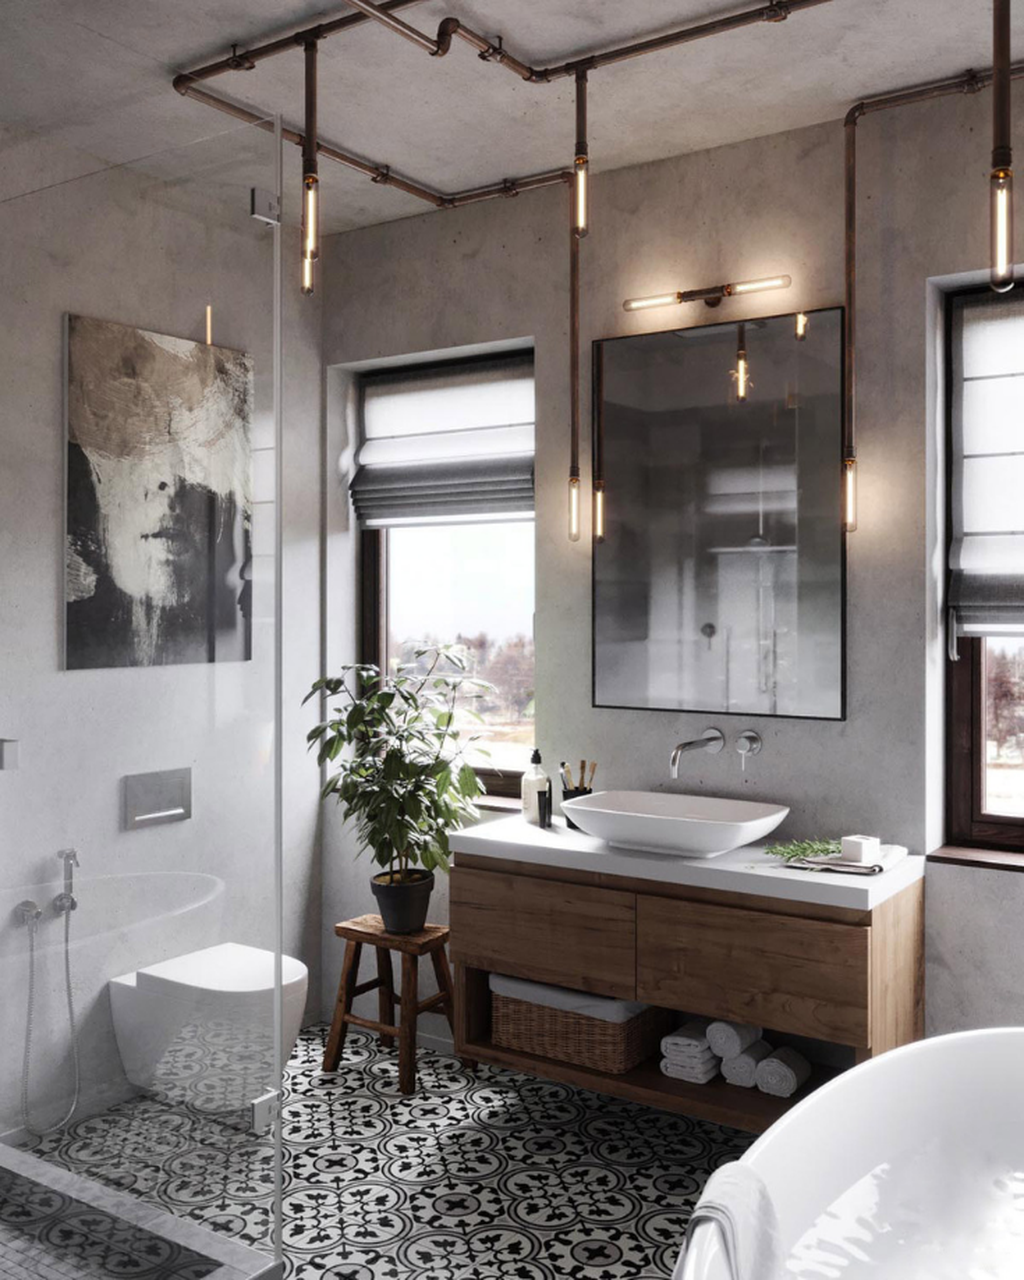 Inspiring Bathroom Interior Design Ideas 01